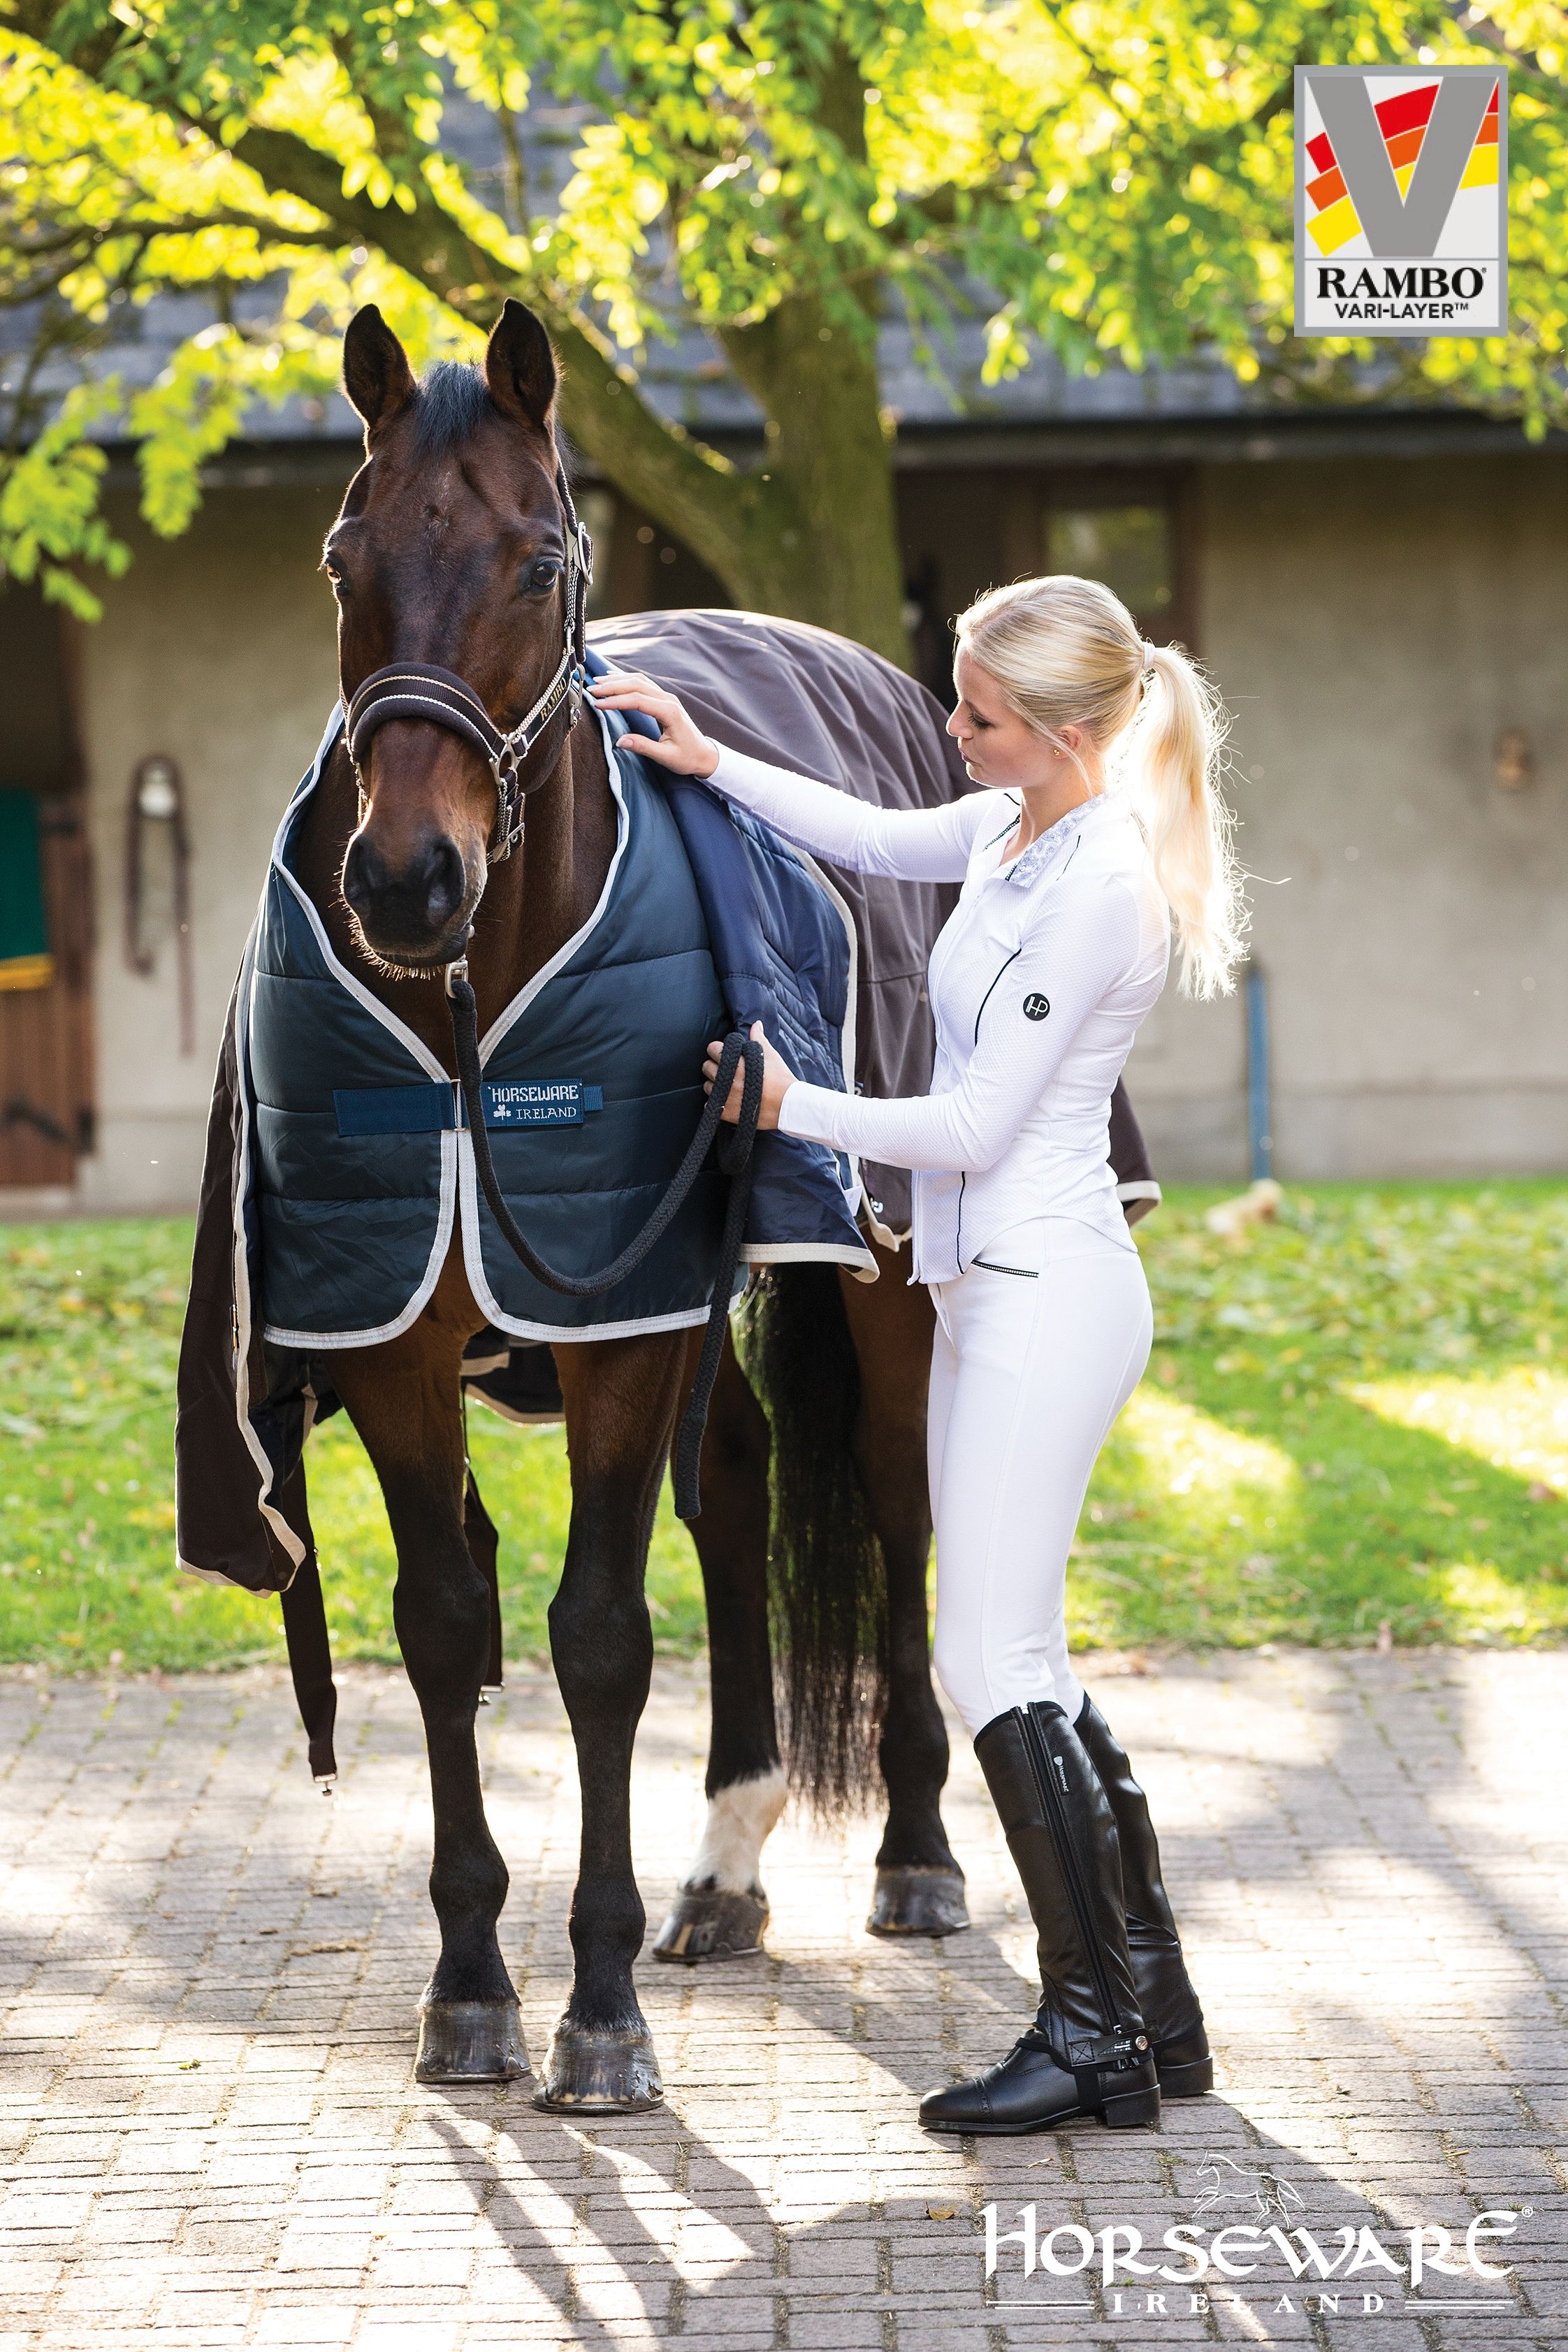 Horseware Collection S/S16: Horseware Vari-Layer Liner. Visit www.horseware.com to find your nearest stockist.